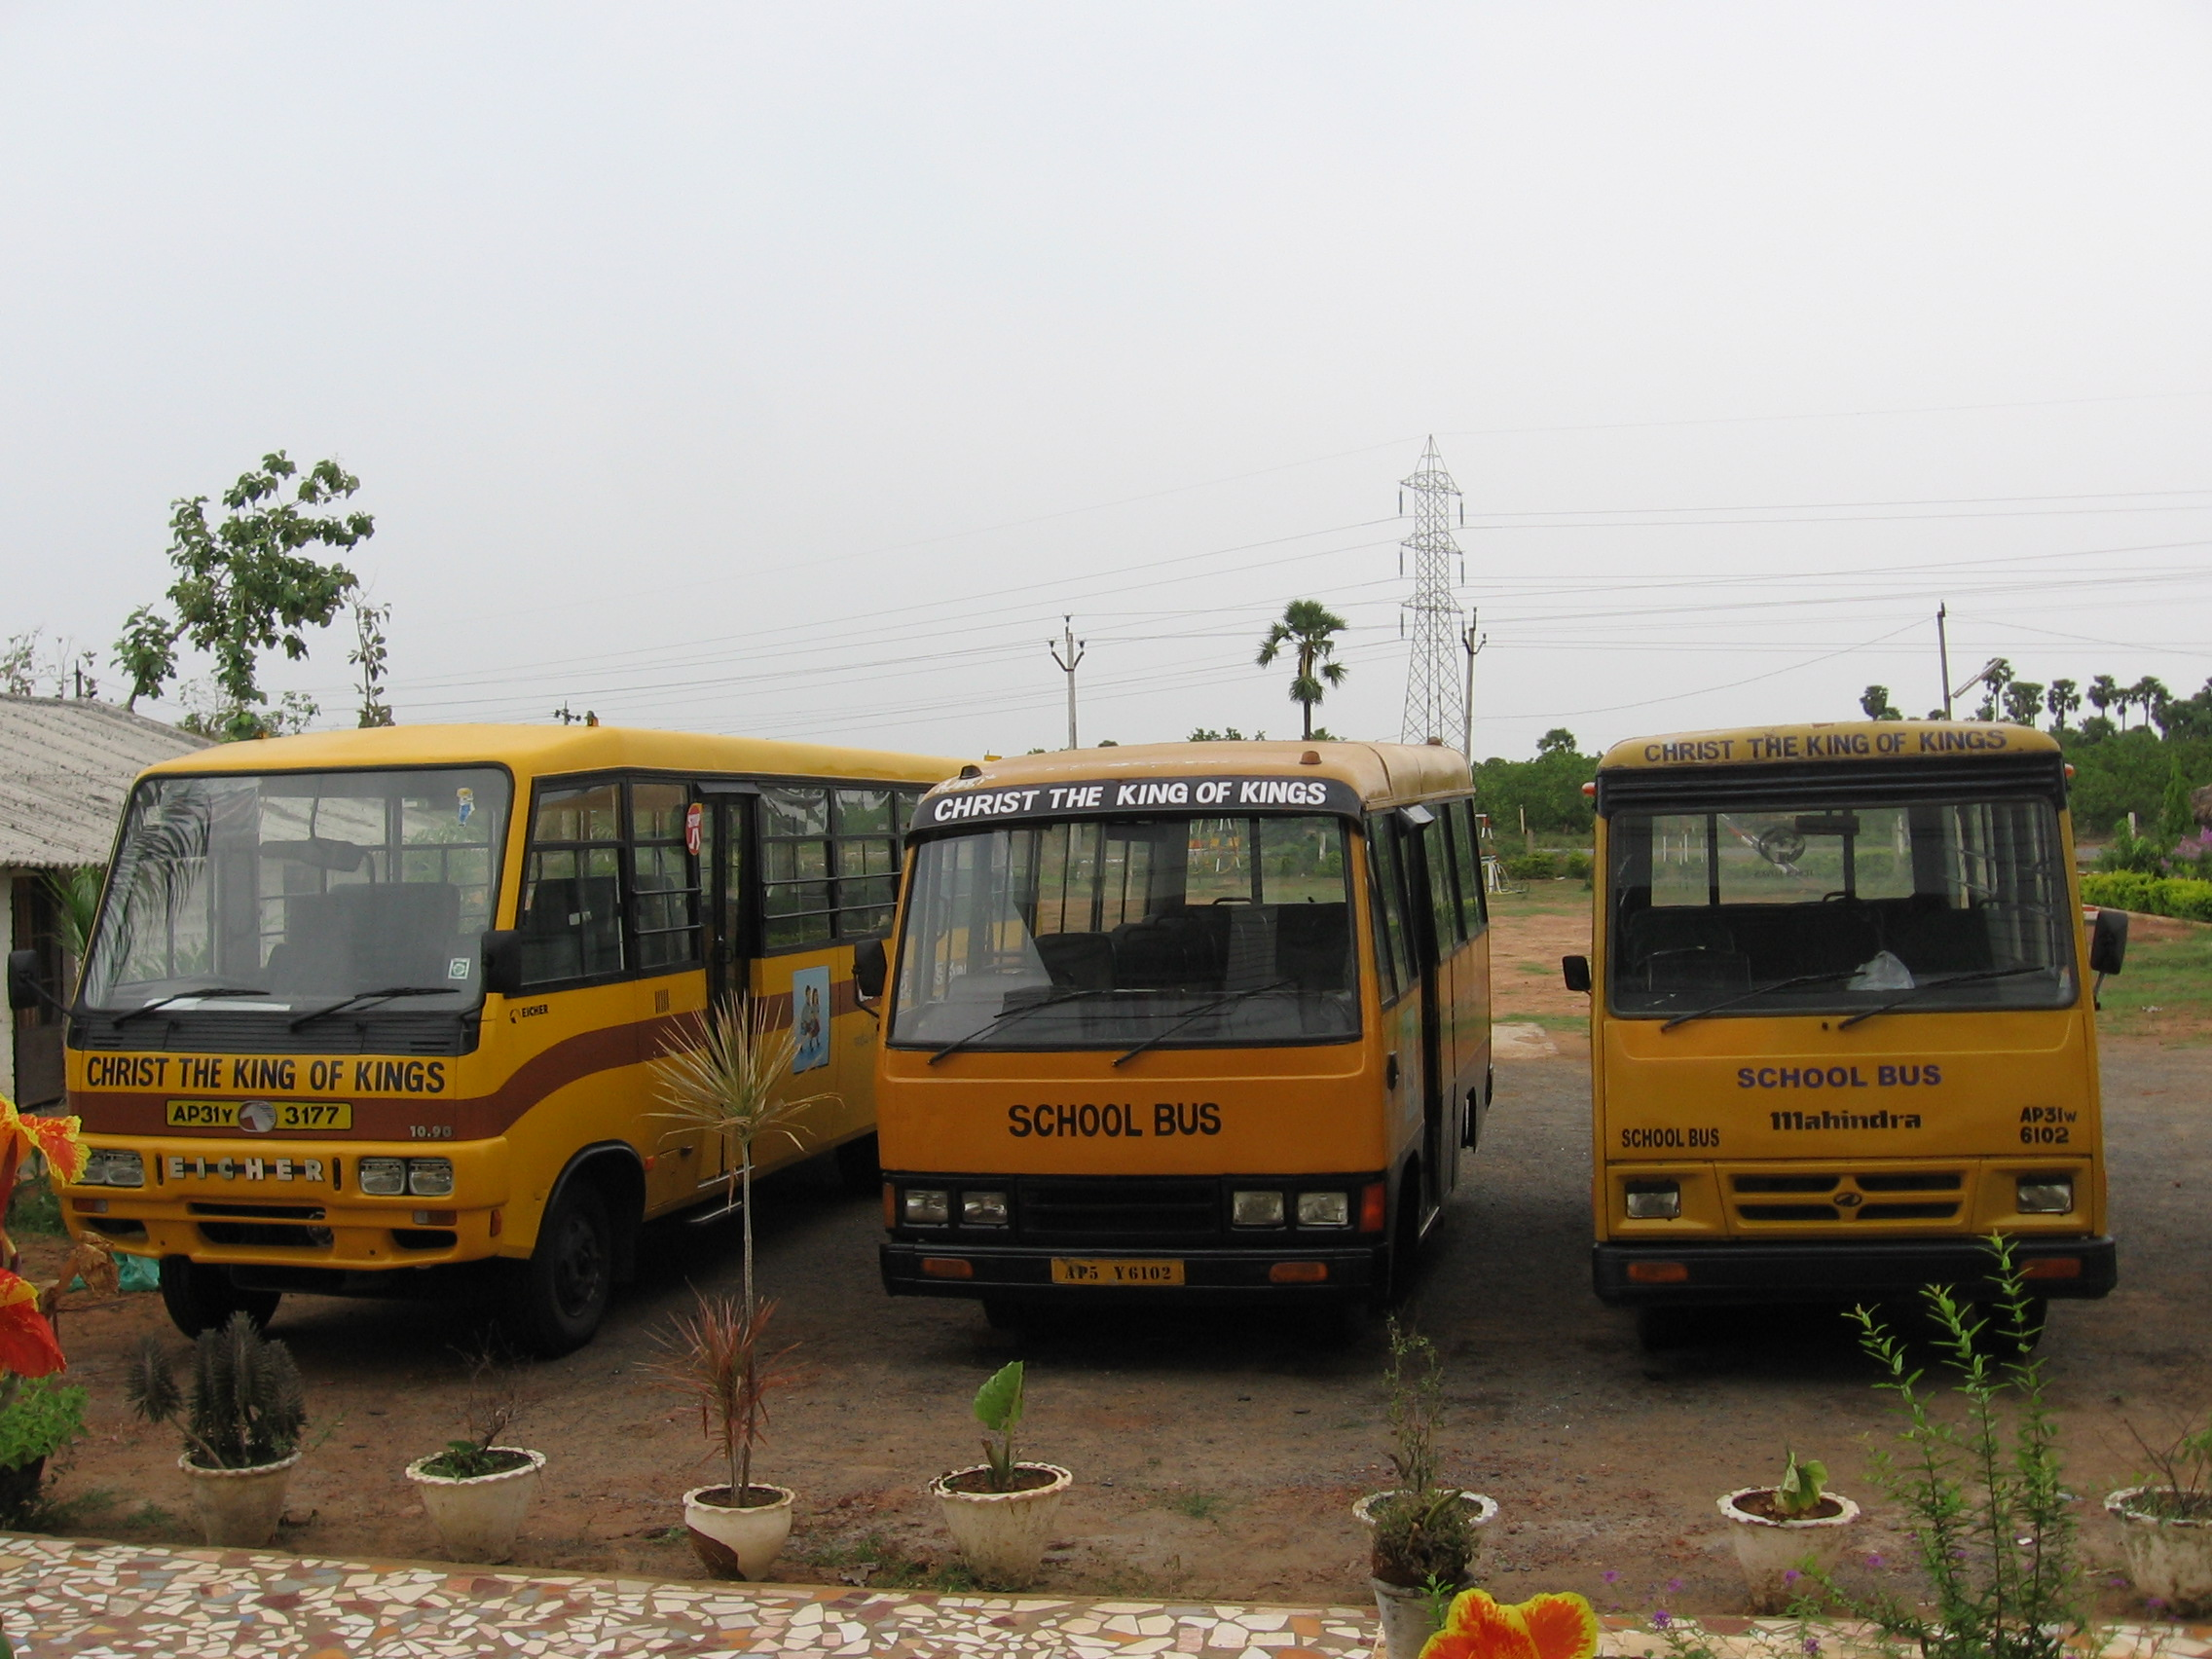 2002 -  The Two World's School opens to area children and soon the school is at capacity.   A second building begins construction that will expand the children's home to include space for 200 children, and 600 school children.